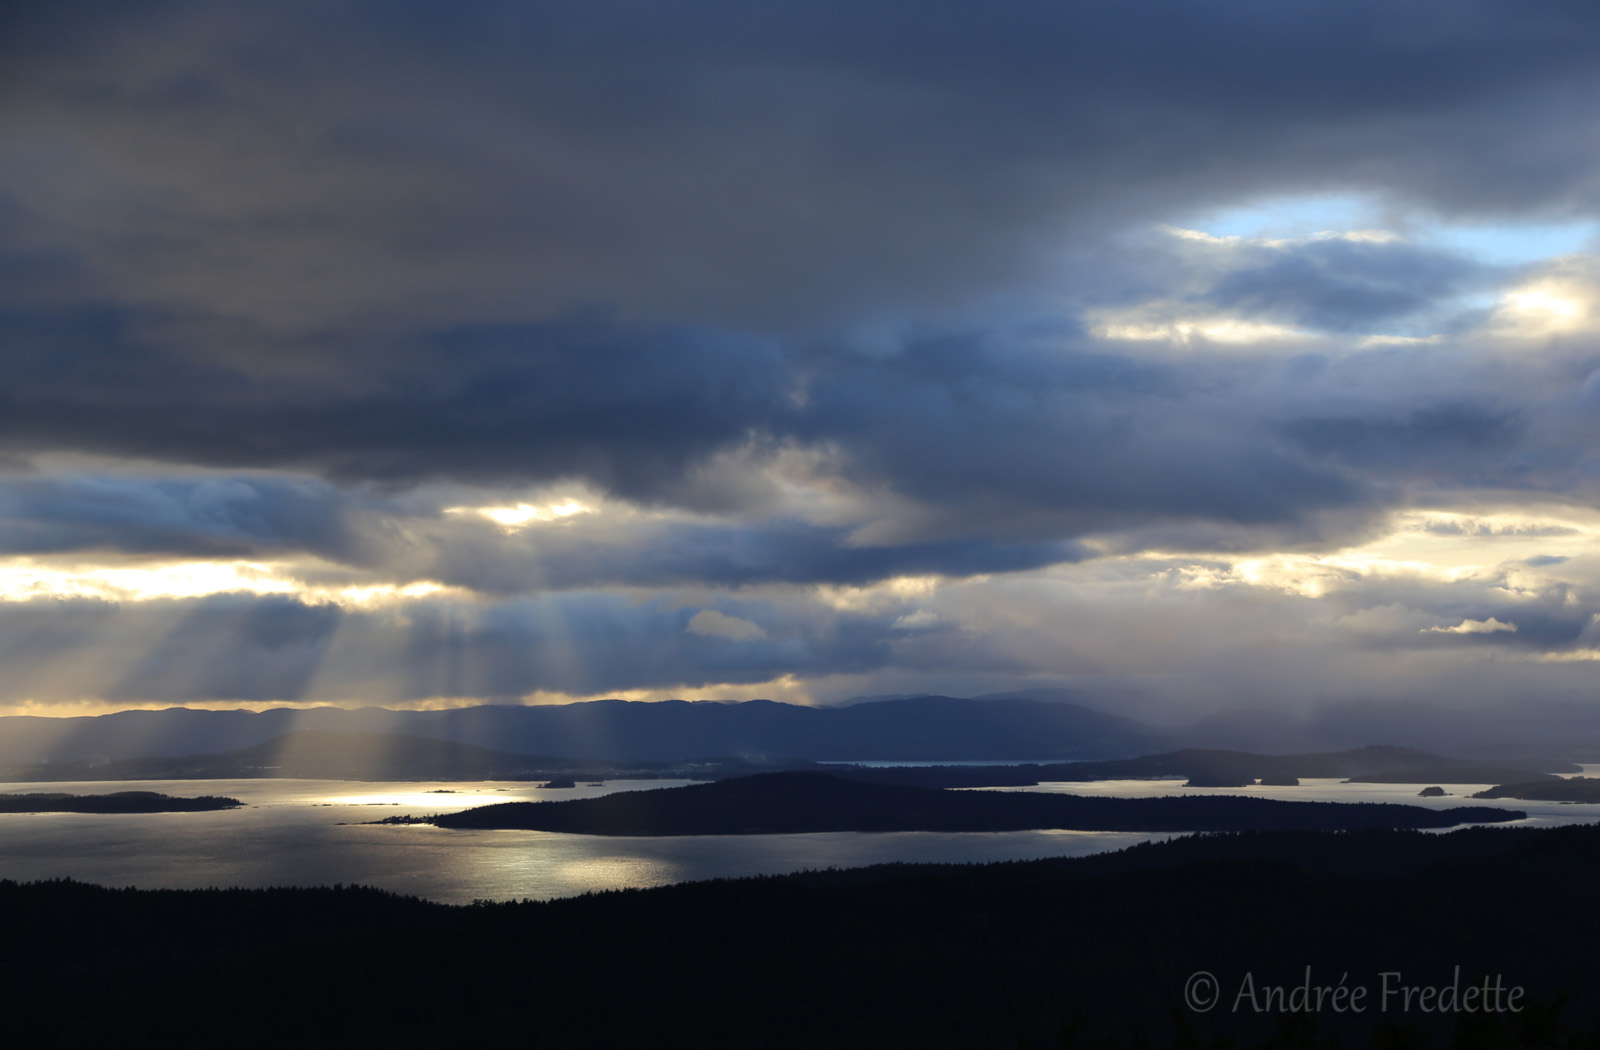 Sunset blues over the Southern Gulf Islands. Photo by Andrée Fredette